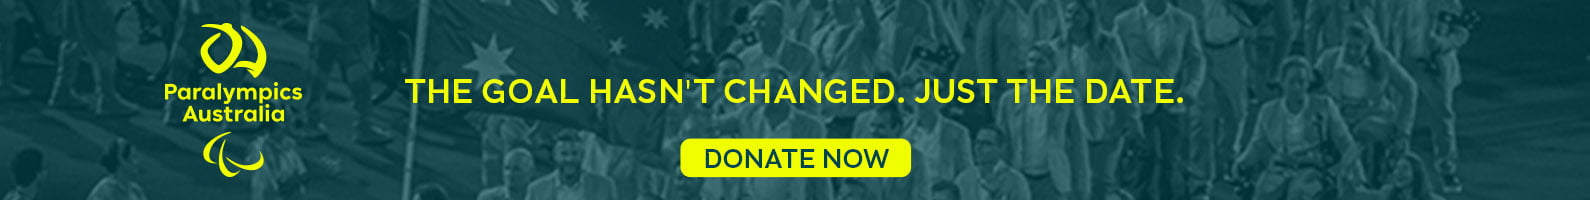 Donate now: the dream hasn't changed. Just the date.